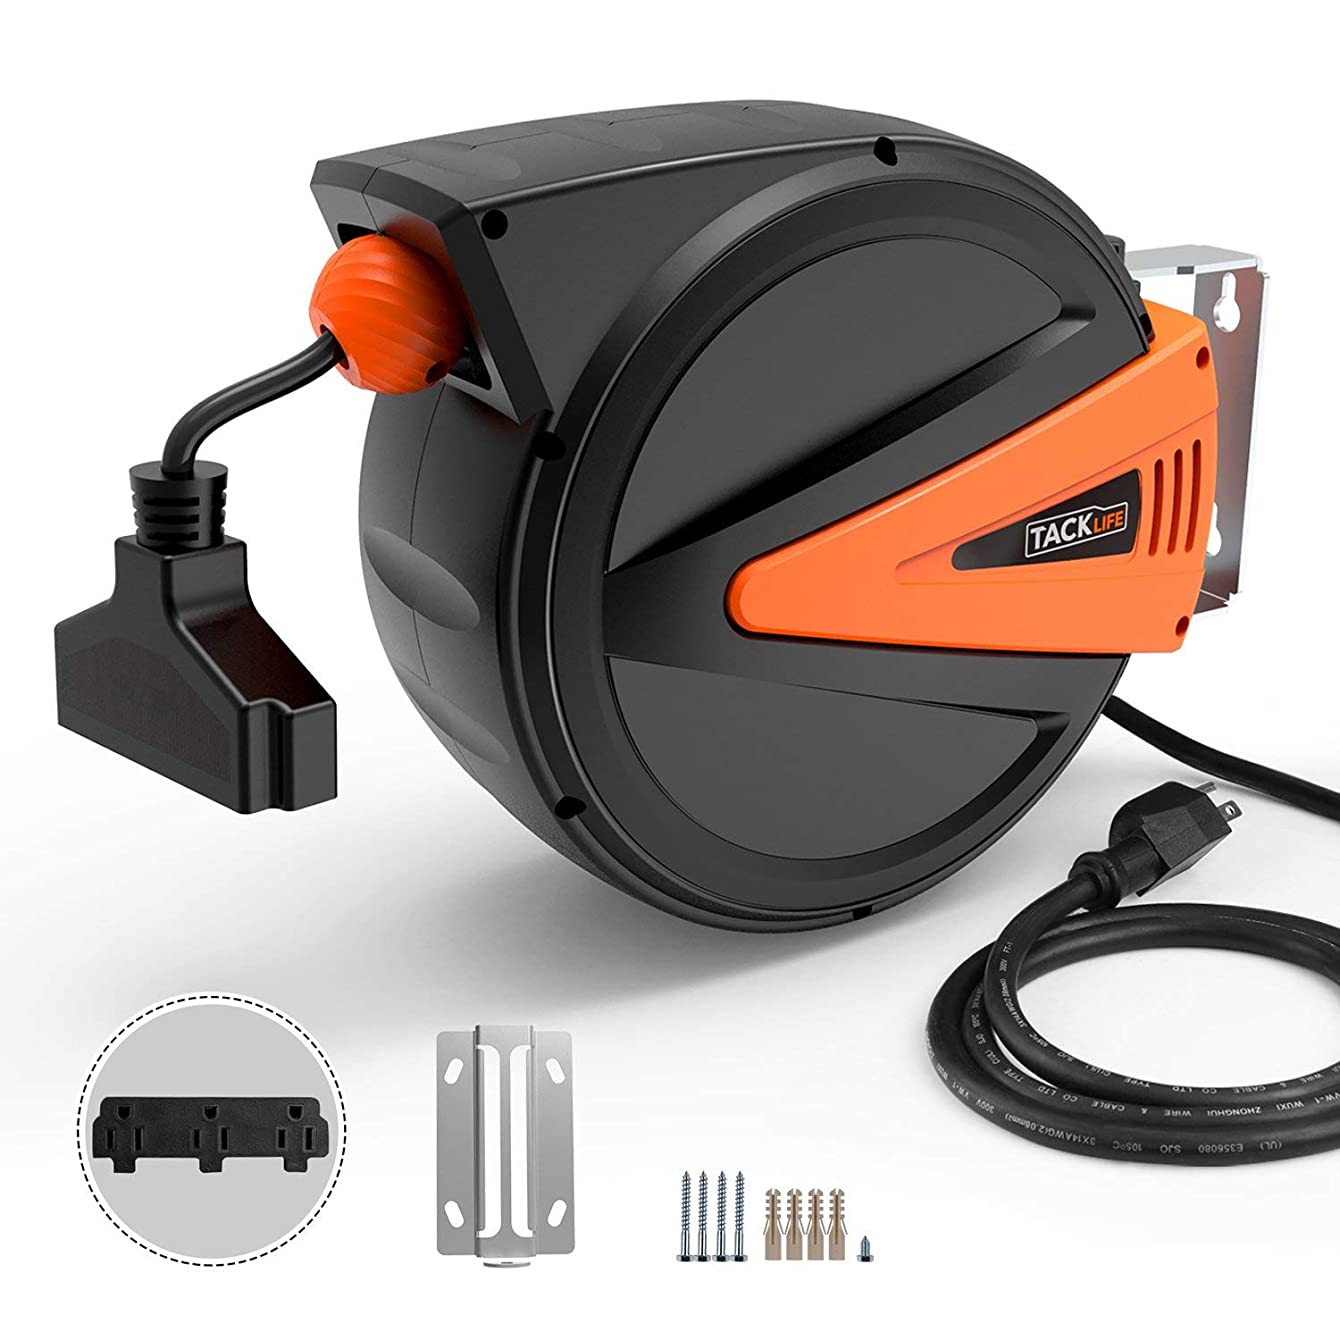 50+4.5ft Retractable Extension Cord, TACKLIFE Cord Reel, 14AWG, 3C SJTOW, 180°Swivel Ceiling or Mounting Metal Slotted Base, Tri Tap Connector, Reset Button and Adjustable Stopper, GCR2A